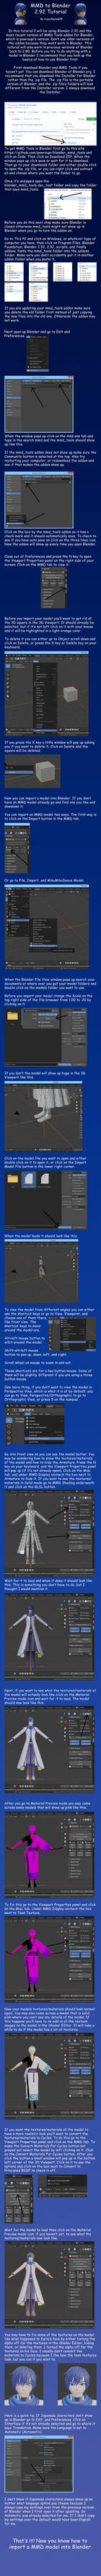 MMD to Blender 2.92 Tutorial